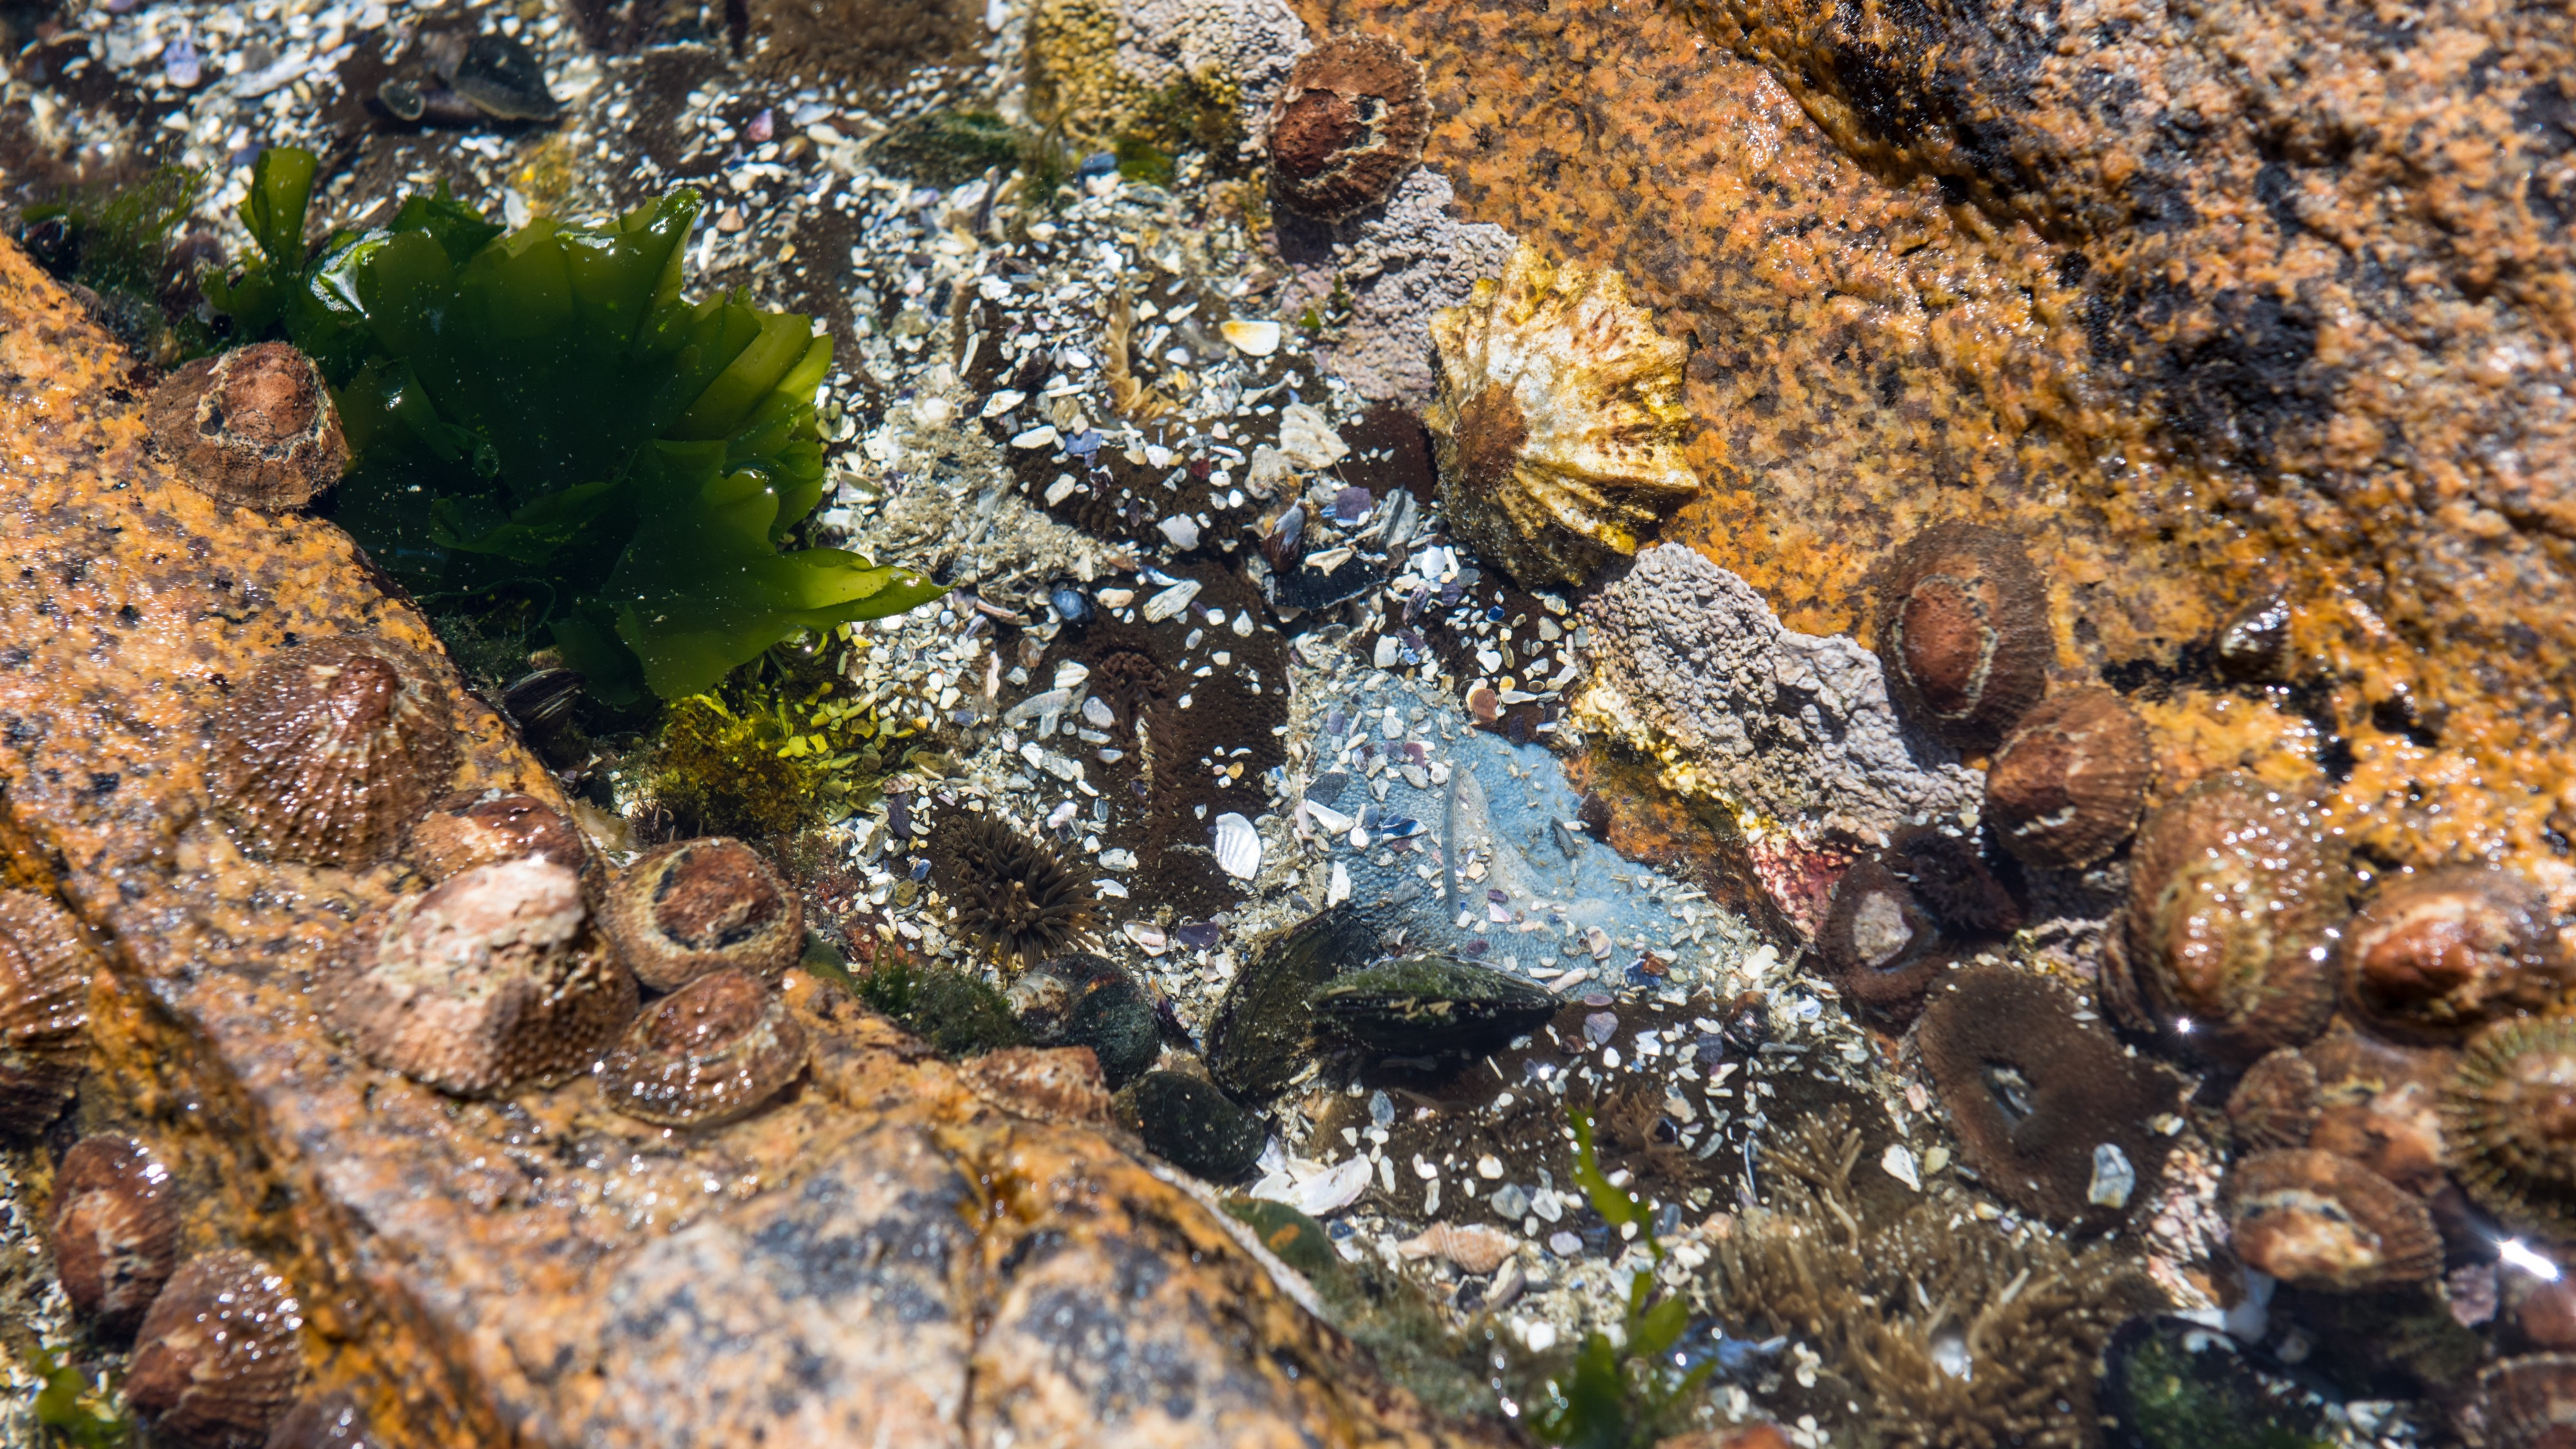 A picture of clams, mussels, and alga on stone in a tide pool in South Africa by Birger Strahl